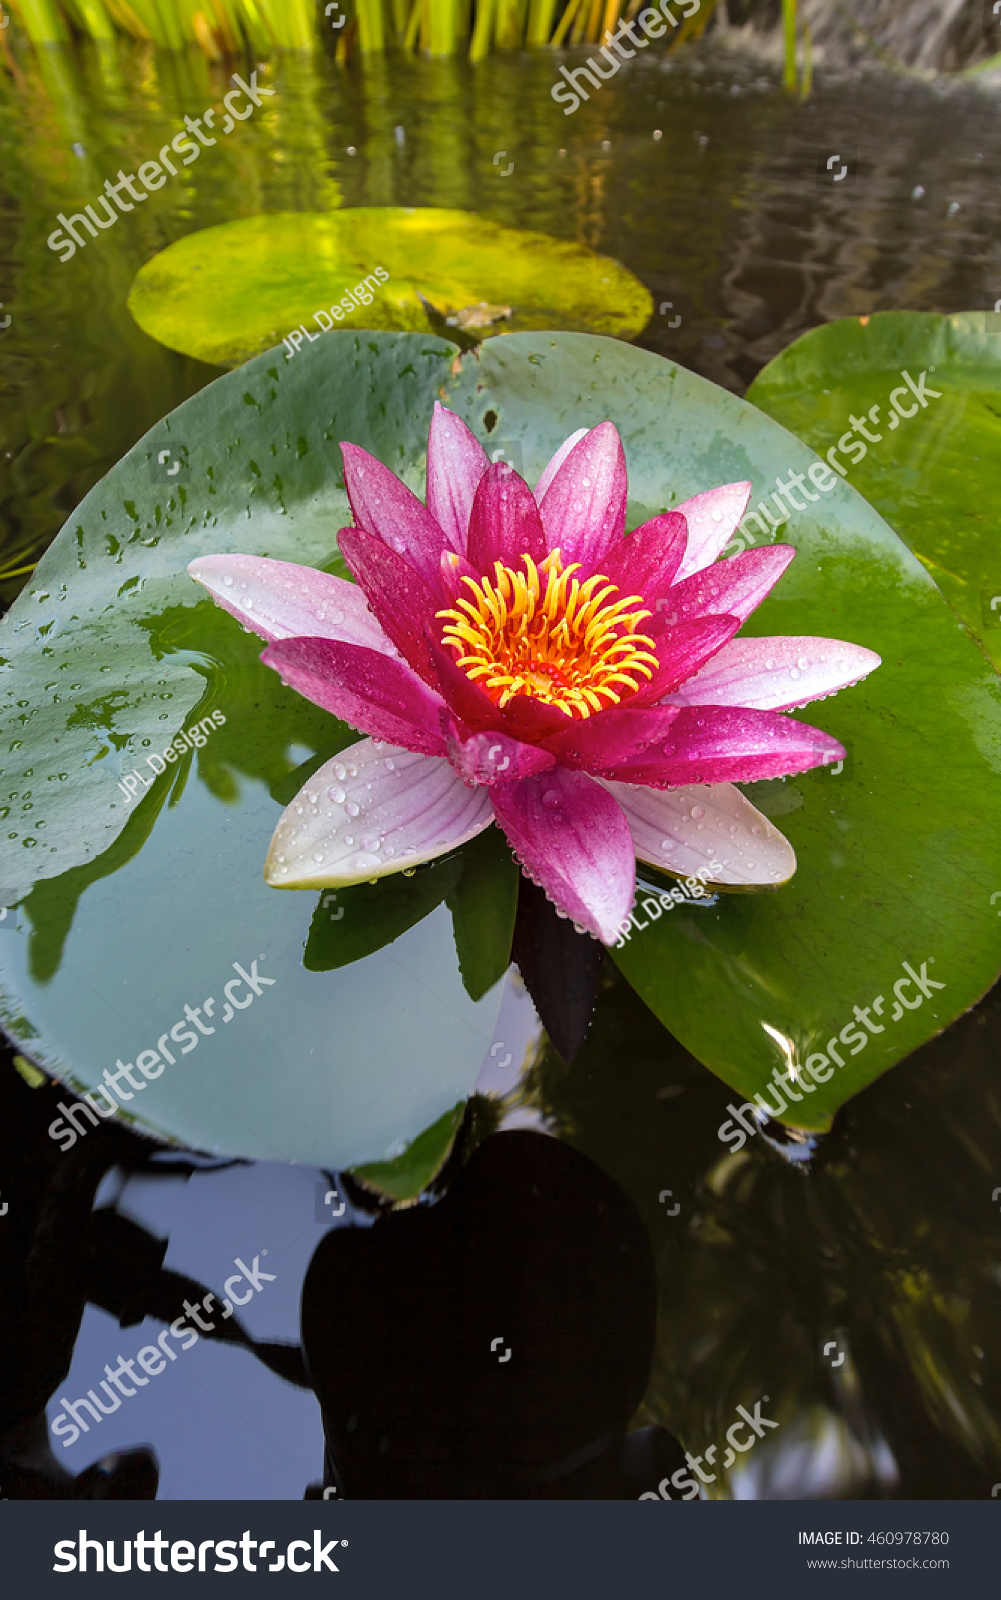 Pink water lily flowers in bloom with lilypad in garden backyard id 460978780 izmirmasajfo